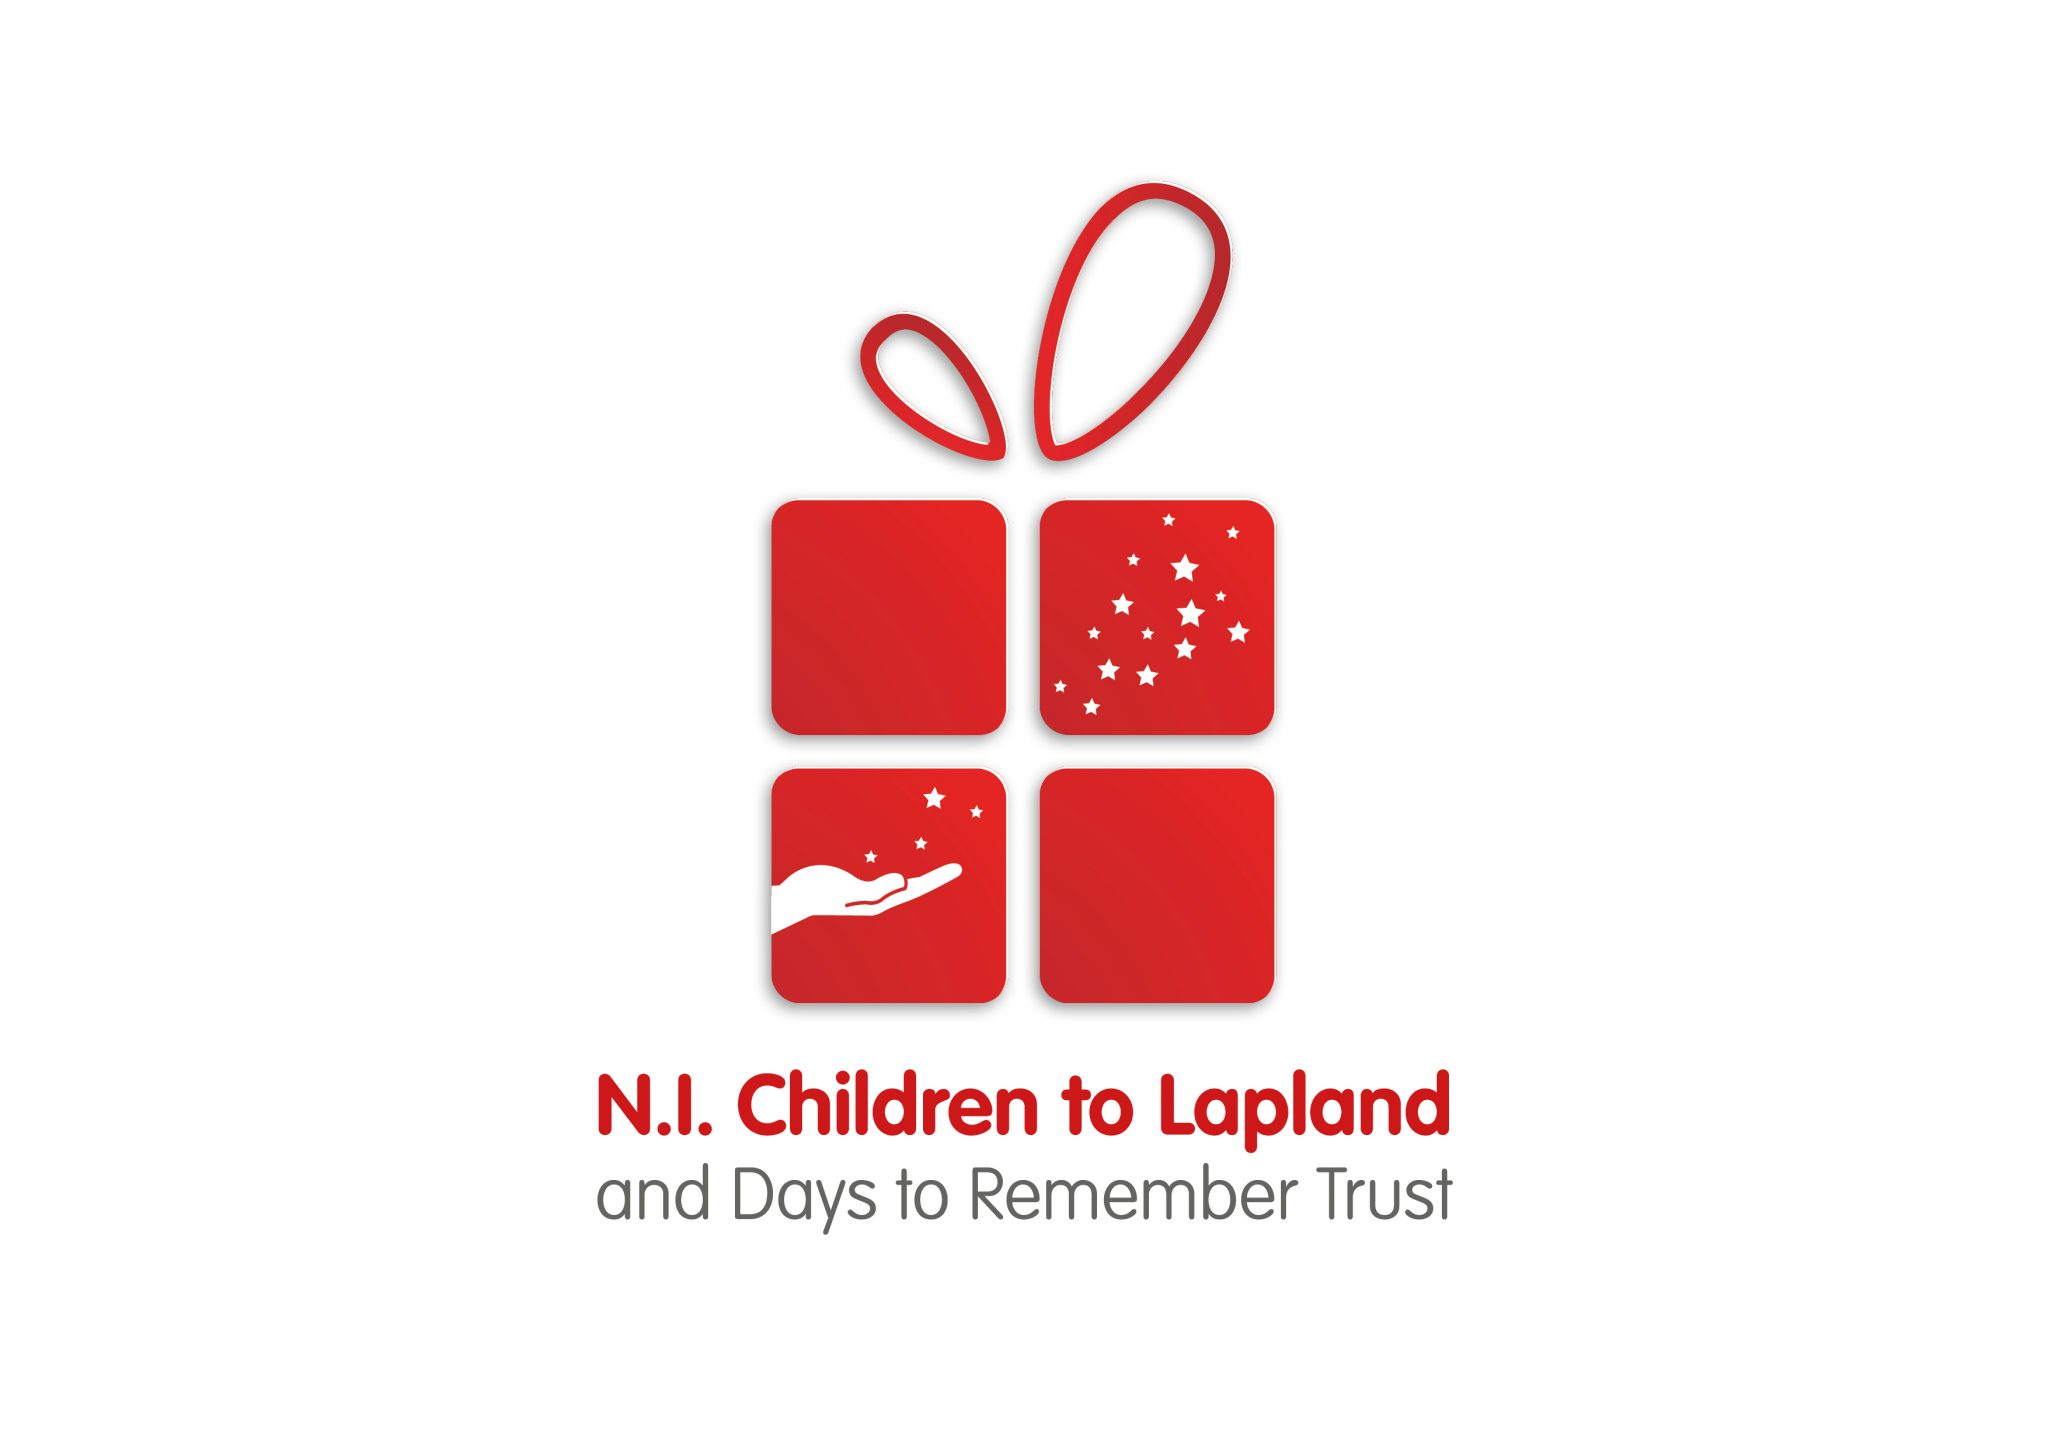 NI-Children-to-Lapland-Trust-logo